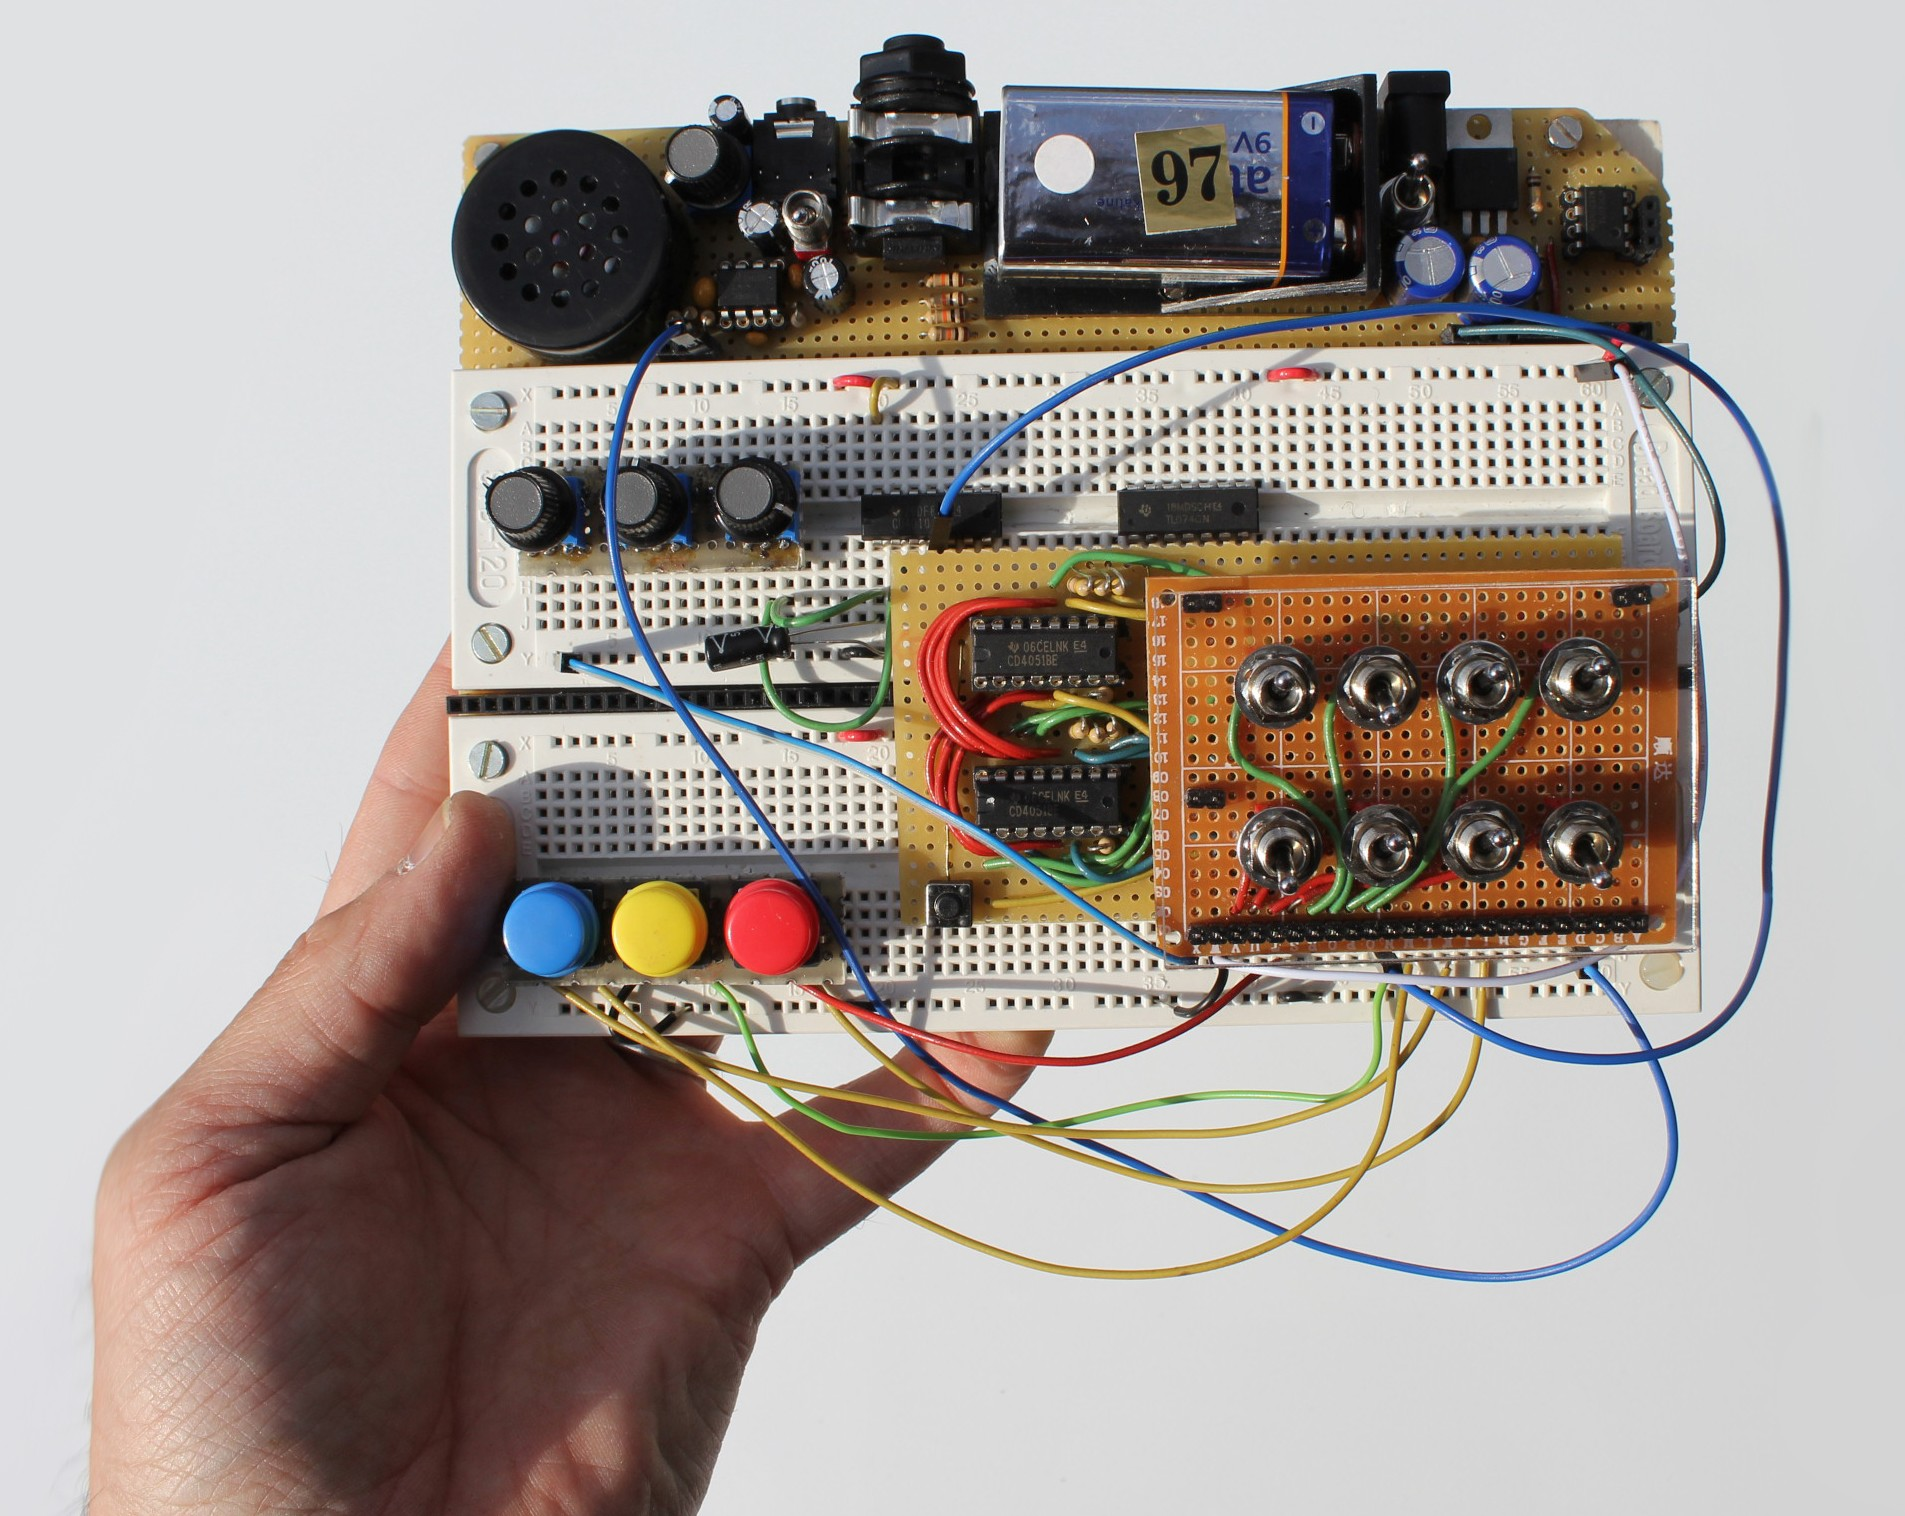 Synthesizer Breadbpard Diagram Electrical Wiring Diagrams Light2sound Ldr Synth Make Breadboard Based Modular System Synthtopia Double Bass